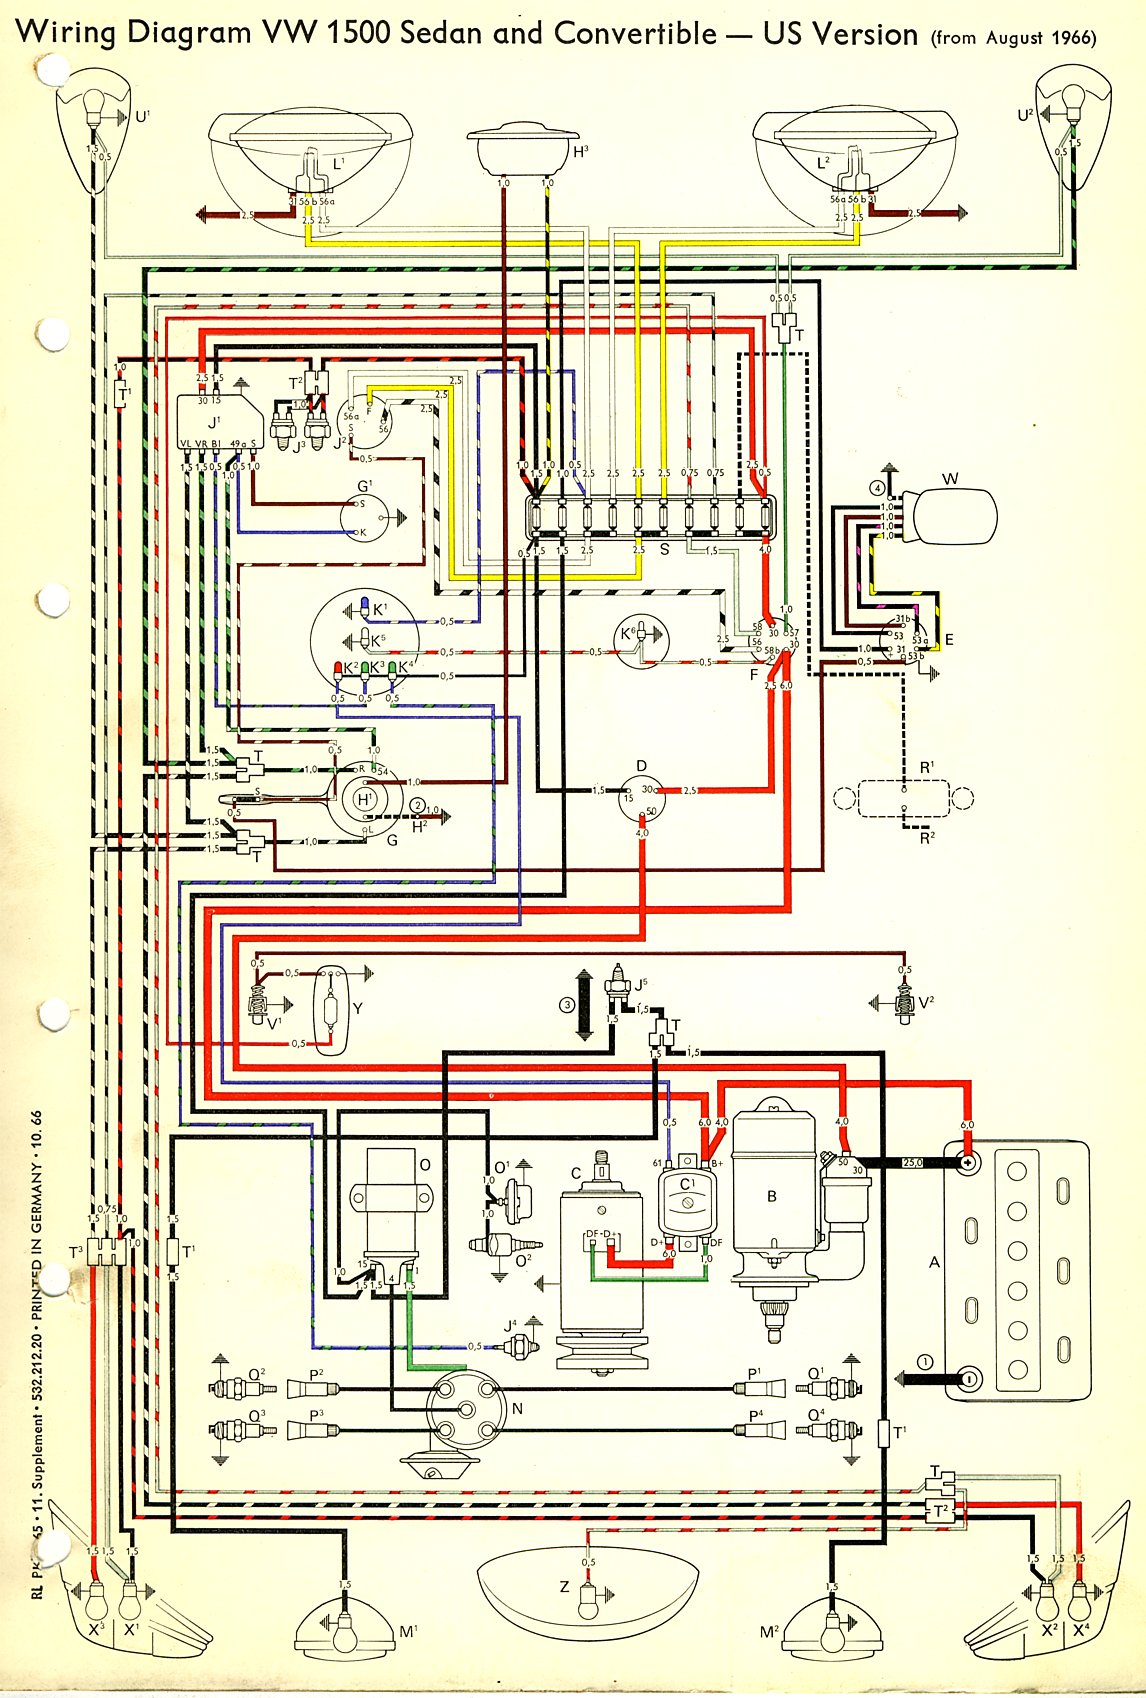 1962 Vw Wiring Diagram Archive Of Automotive 1961 Dodge D100 For Schematics Rh Thyl Co Uk